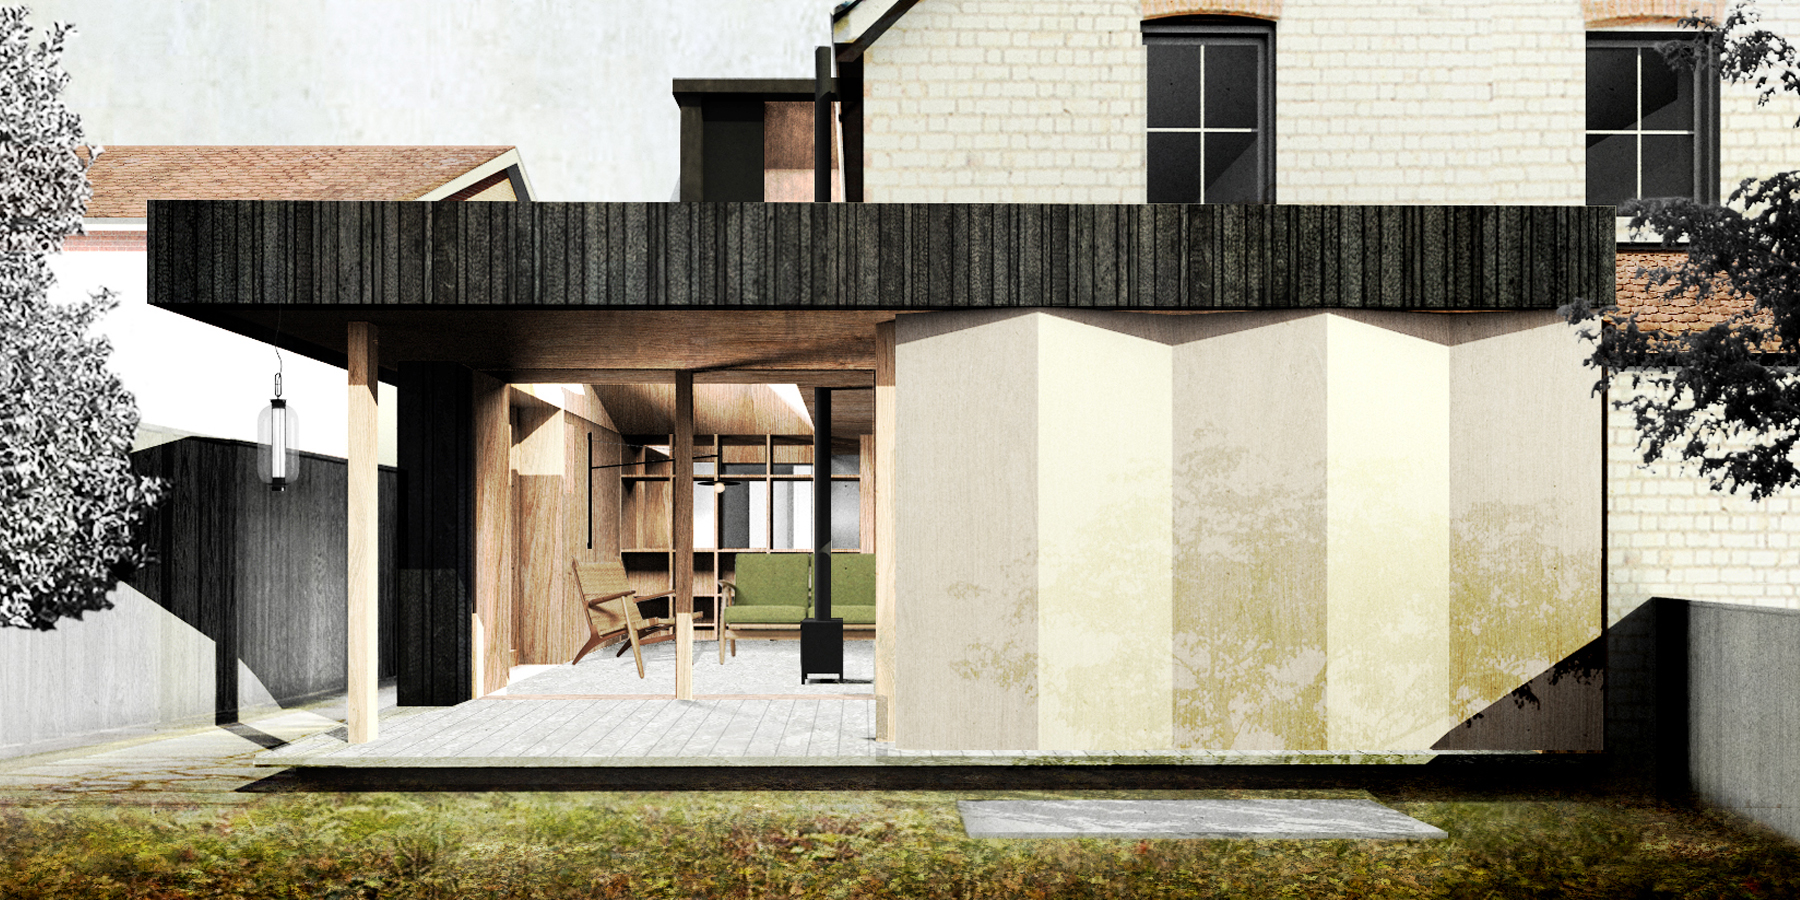 </p> <p>Find your ideal home design pro on designfor-me.com - get matched and see who's interested in your home project. Click image to see more inspiration from our design pros</p> <p>Design by Mark, architect from Westminster, London</p> <p>#architecture #homedesign #modernhomes #homeinspiration #extensions #extensiondesign #extensioninspiration #extensionideas #houseextension #timbercladding #bifolddoors #bifolds </p> <p>